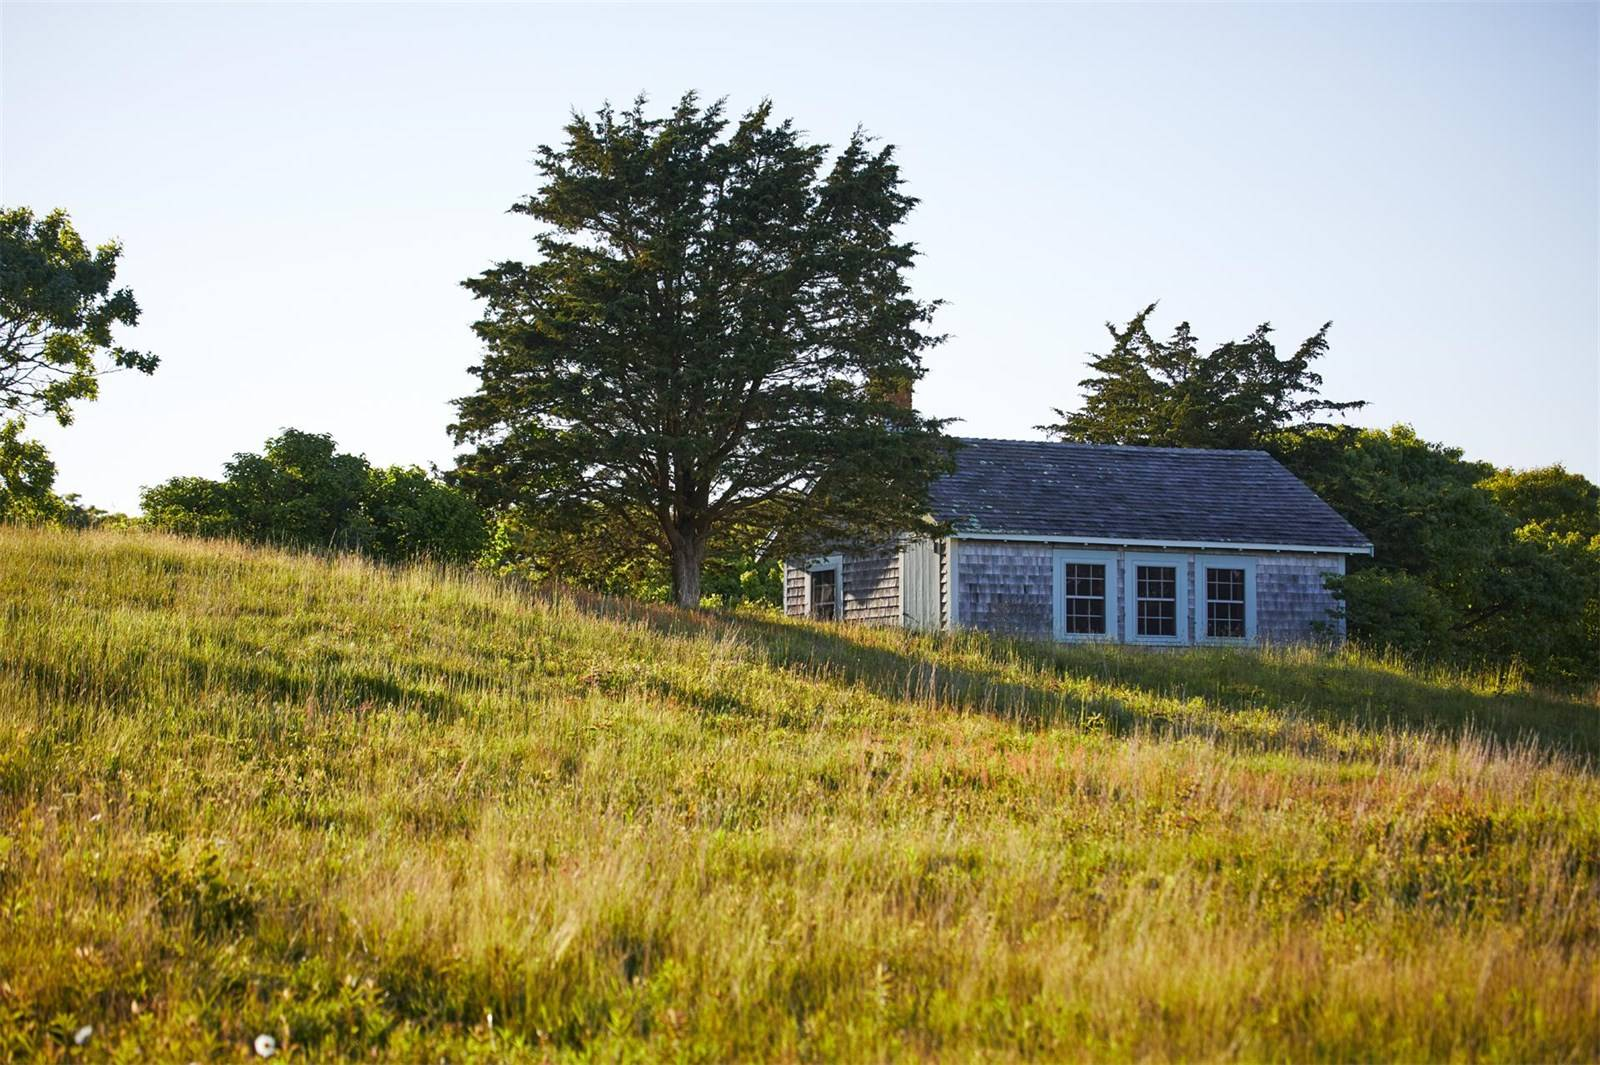 martha's vineyard, jackie kennedy onassis, real estate overview, shoreline, dunes, hunting building